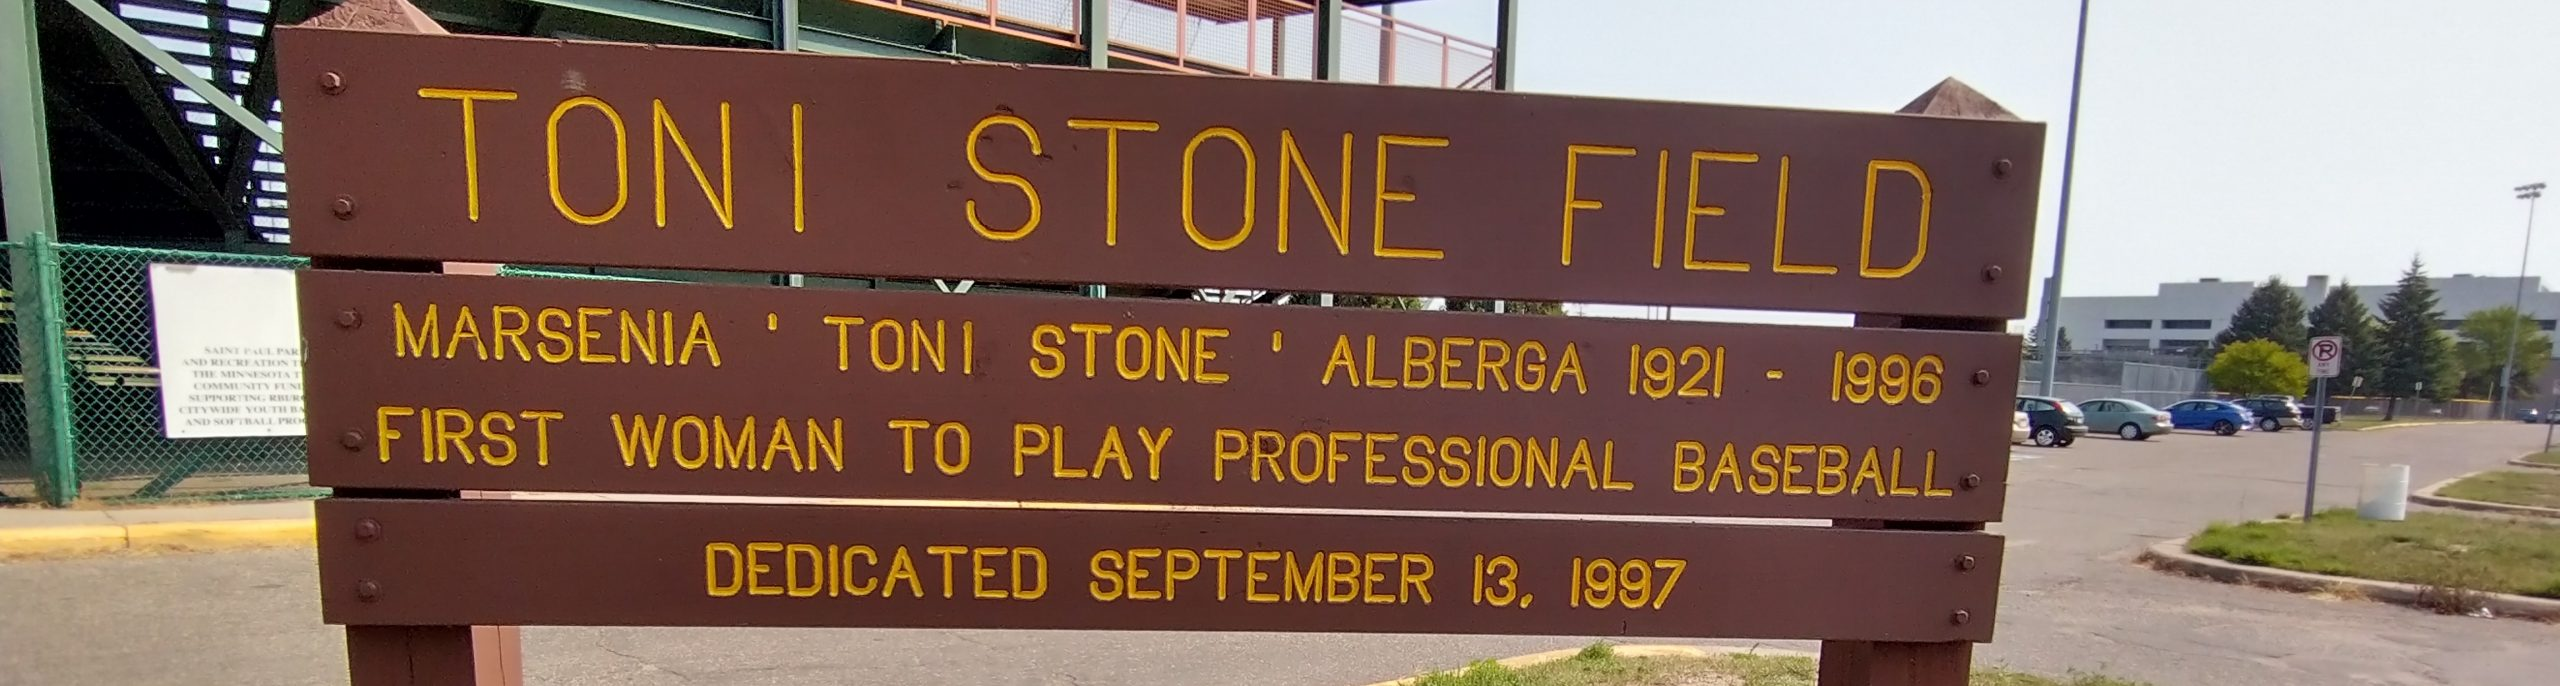 MinneCulture | Add Toni Stone to the Roster of Minnesota Baseball Legends